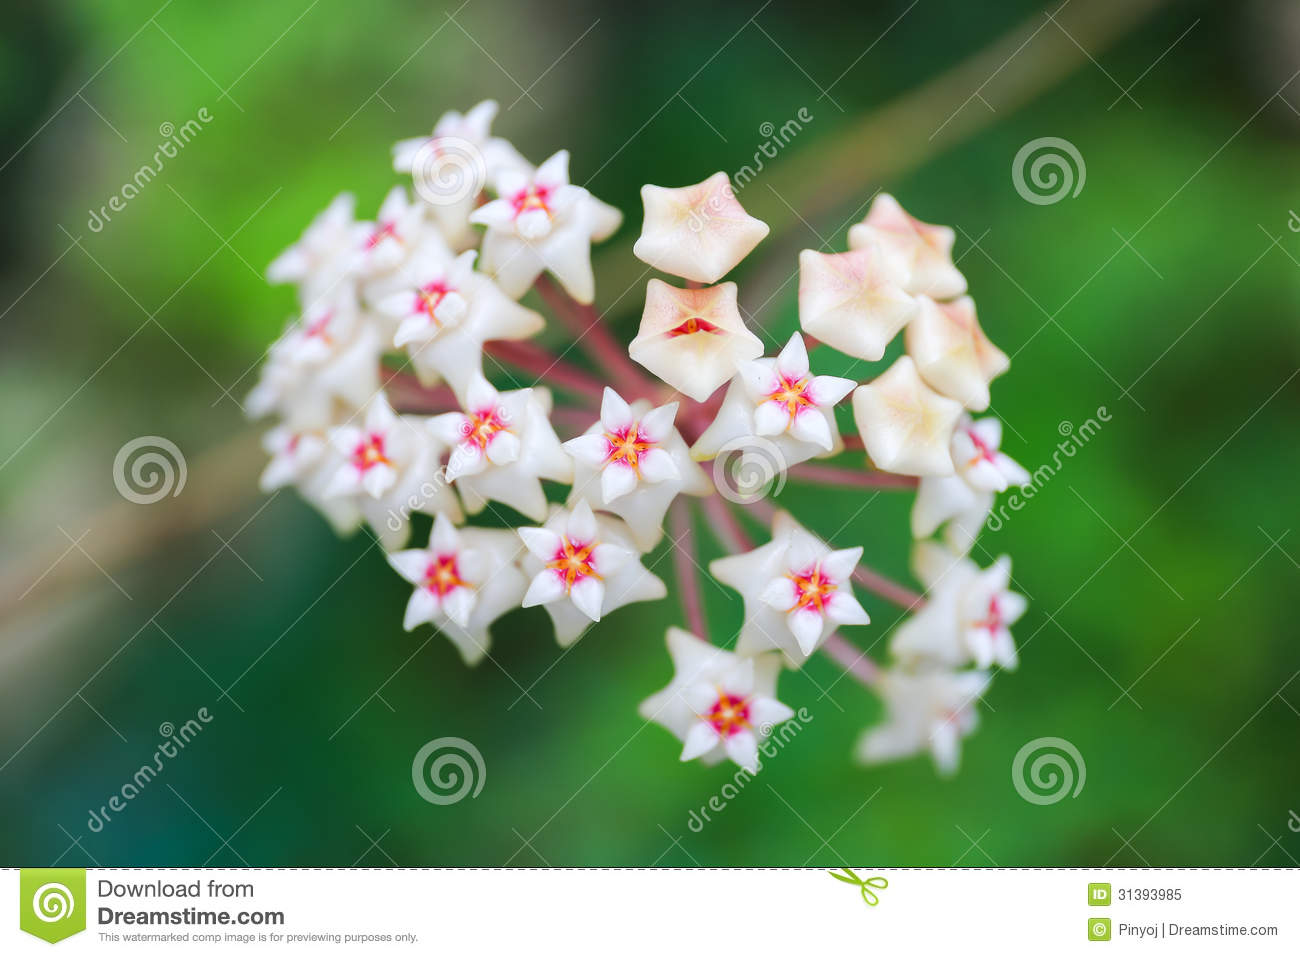 Wax Plant Or Wax Flower Royalty Free Stock Photo.